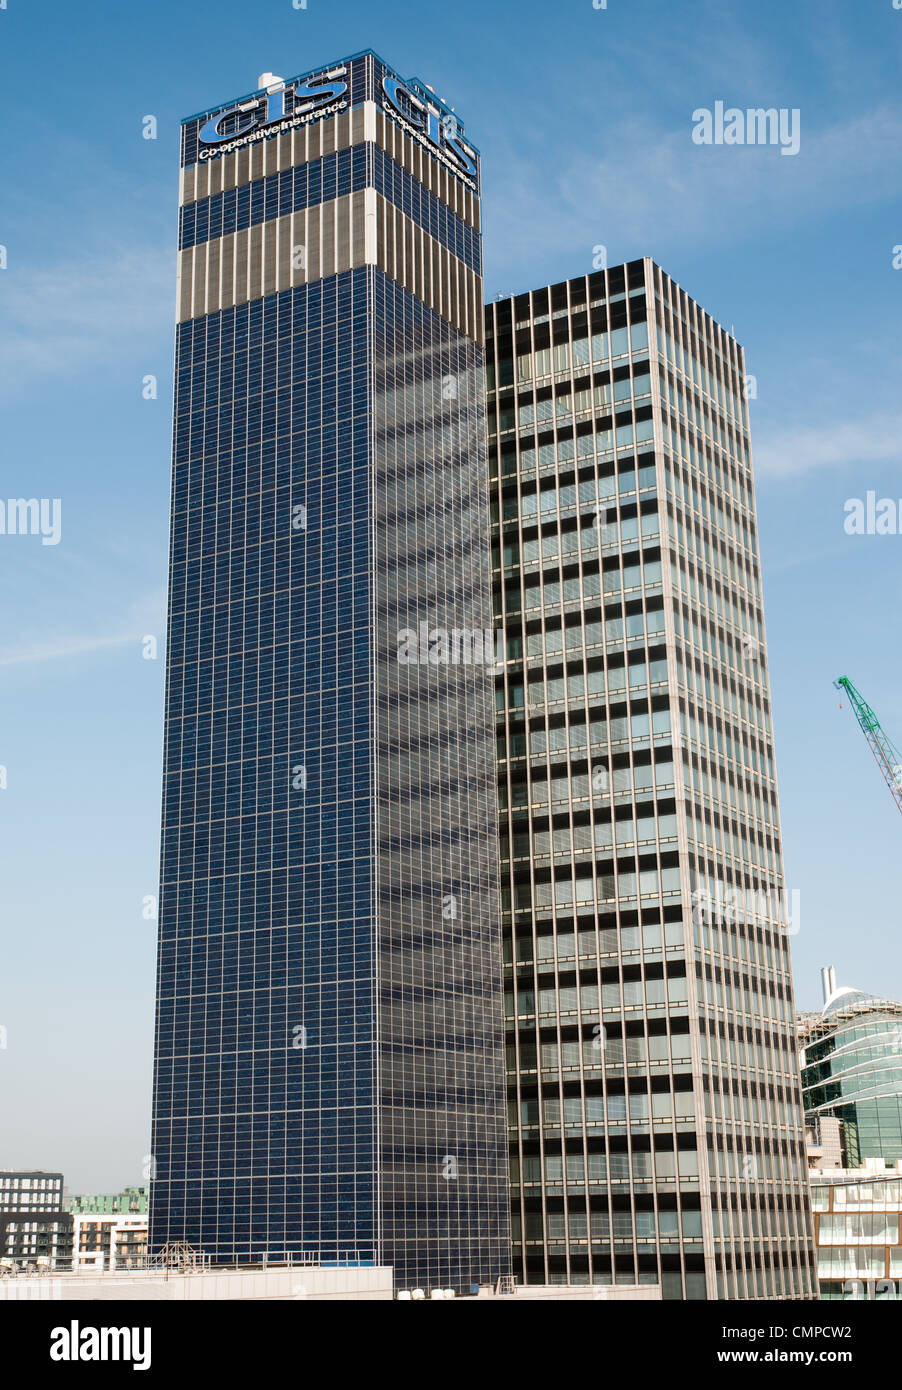 CIS Building in  Manchester city centre, completed in 1962, Grade II listed. - Stock Image